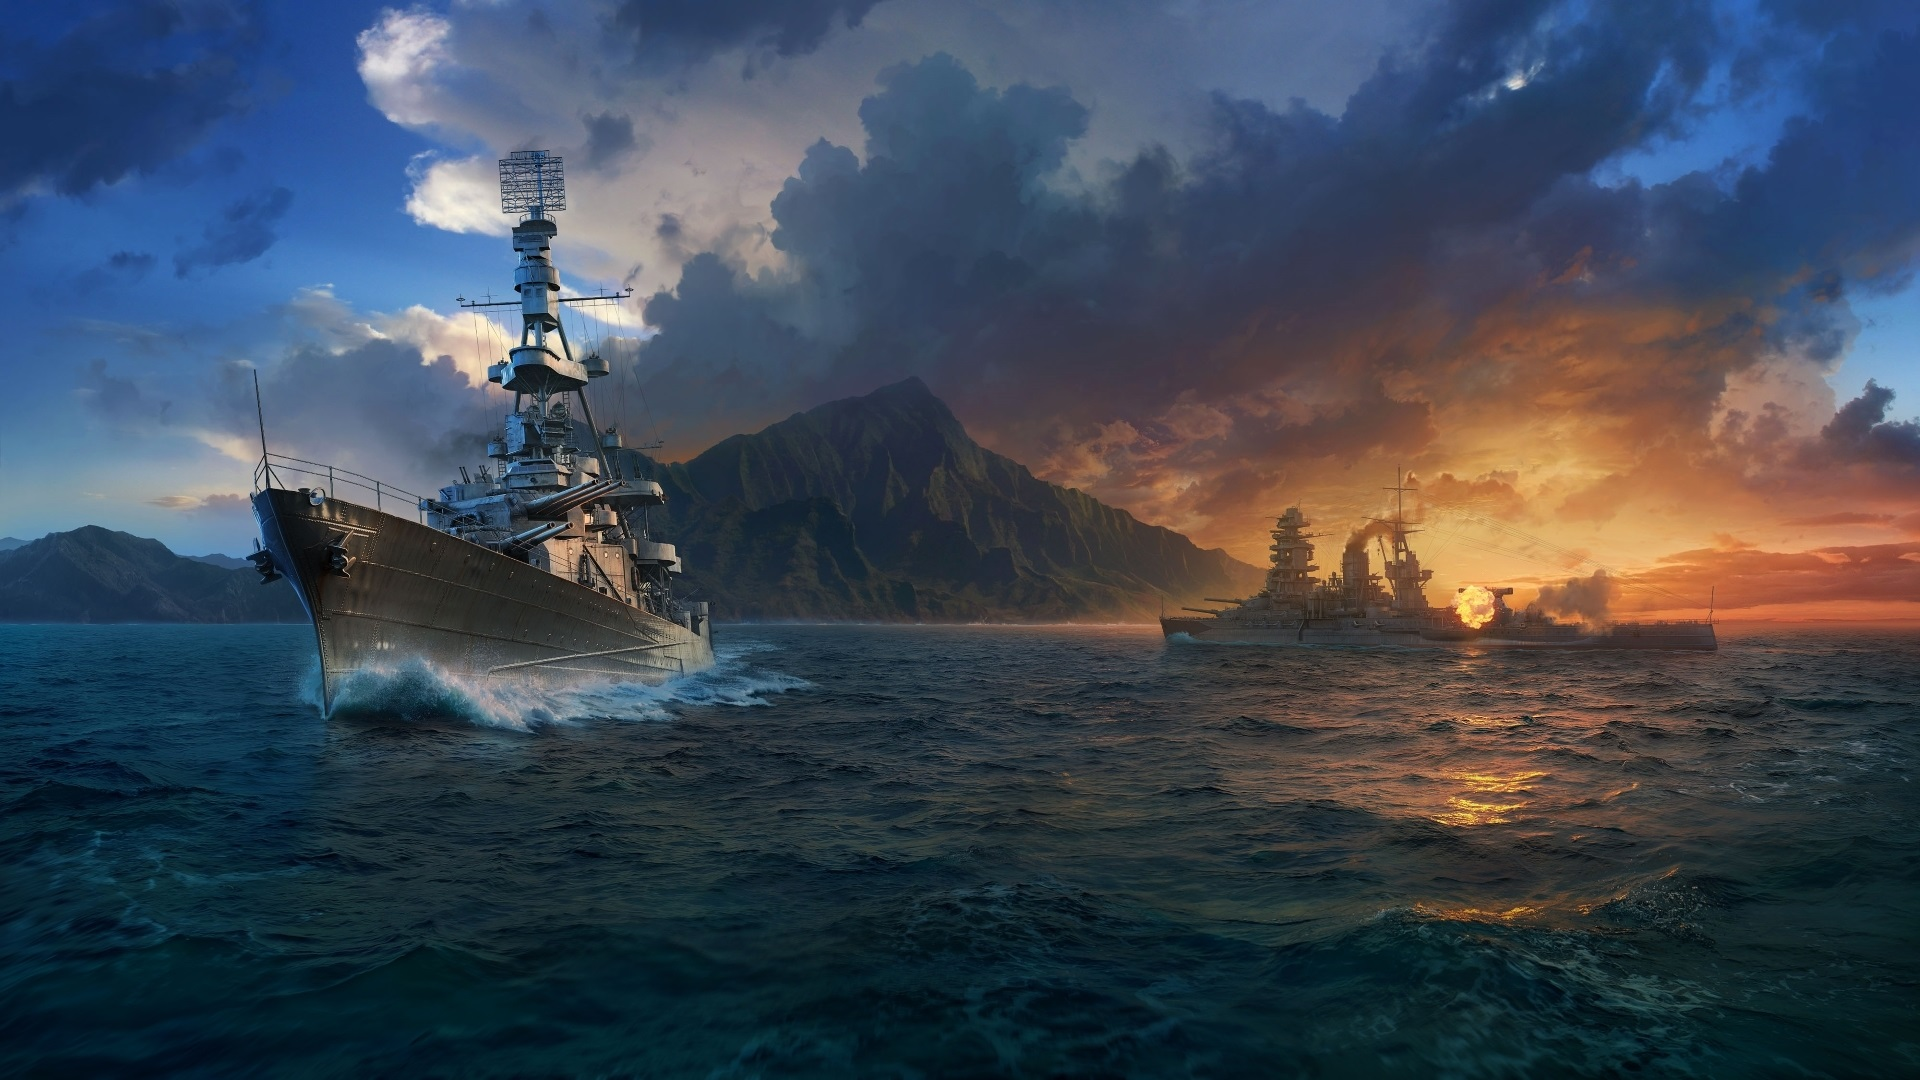 Wallpaper World Of Warships Games Hd 1920x1080 Full Hd 2k Picture